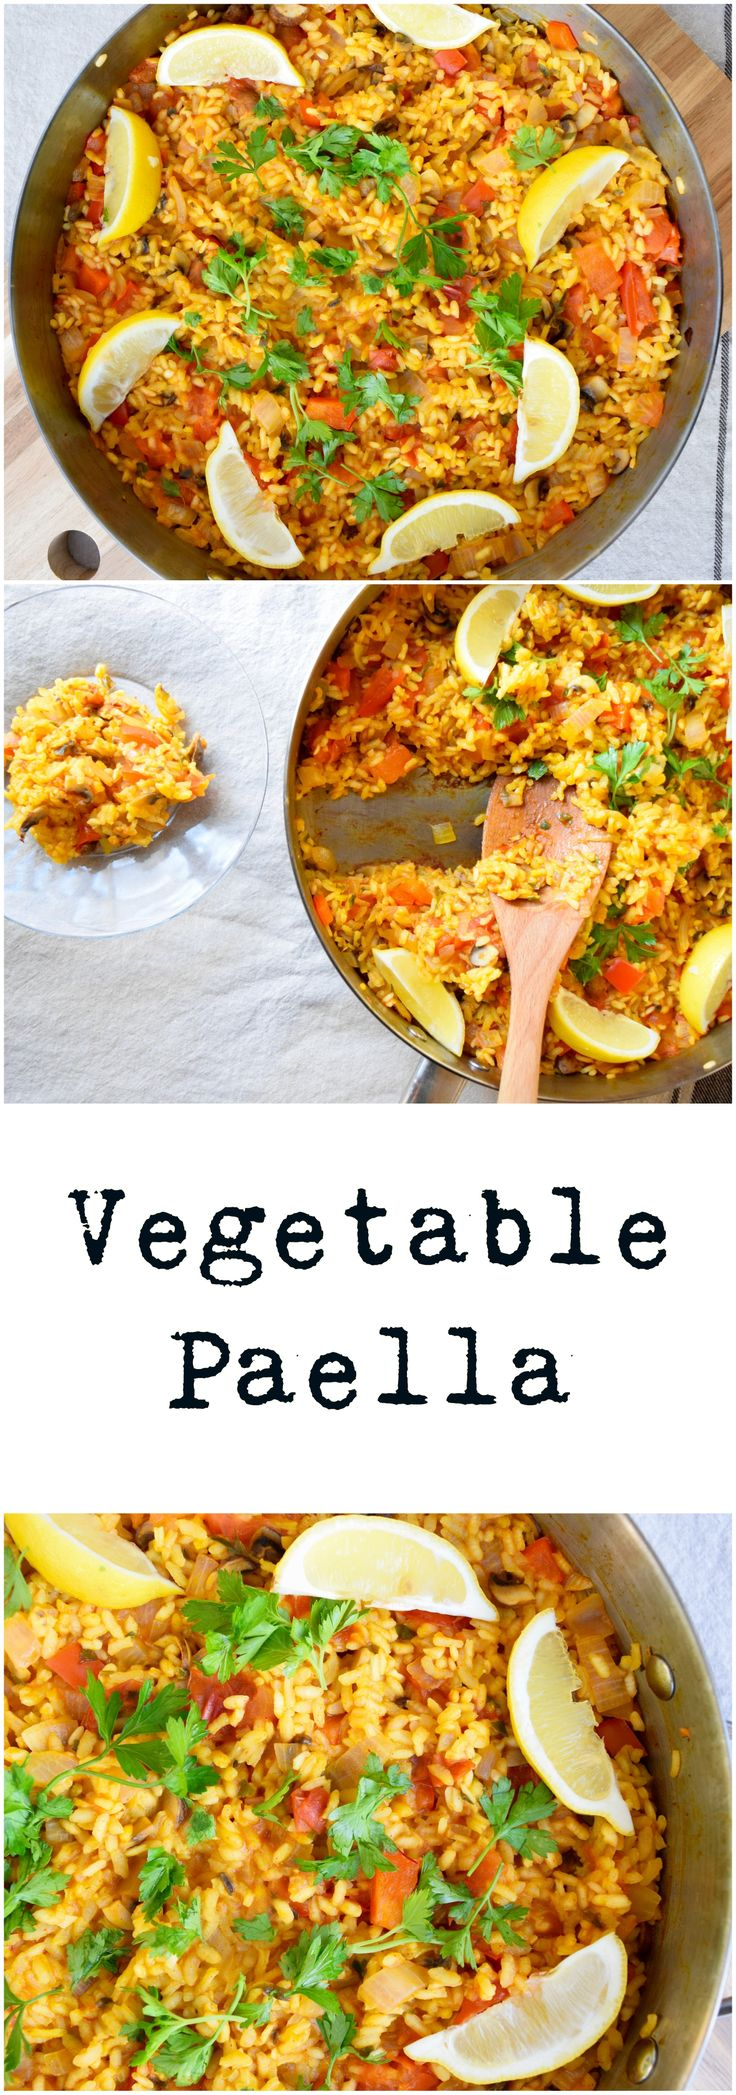 A not so traditional vegan/vegetarian Paella that's easy, healthy, and incredibly delicious!